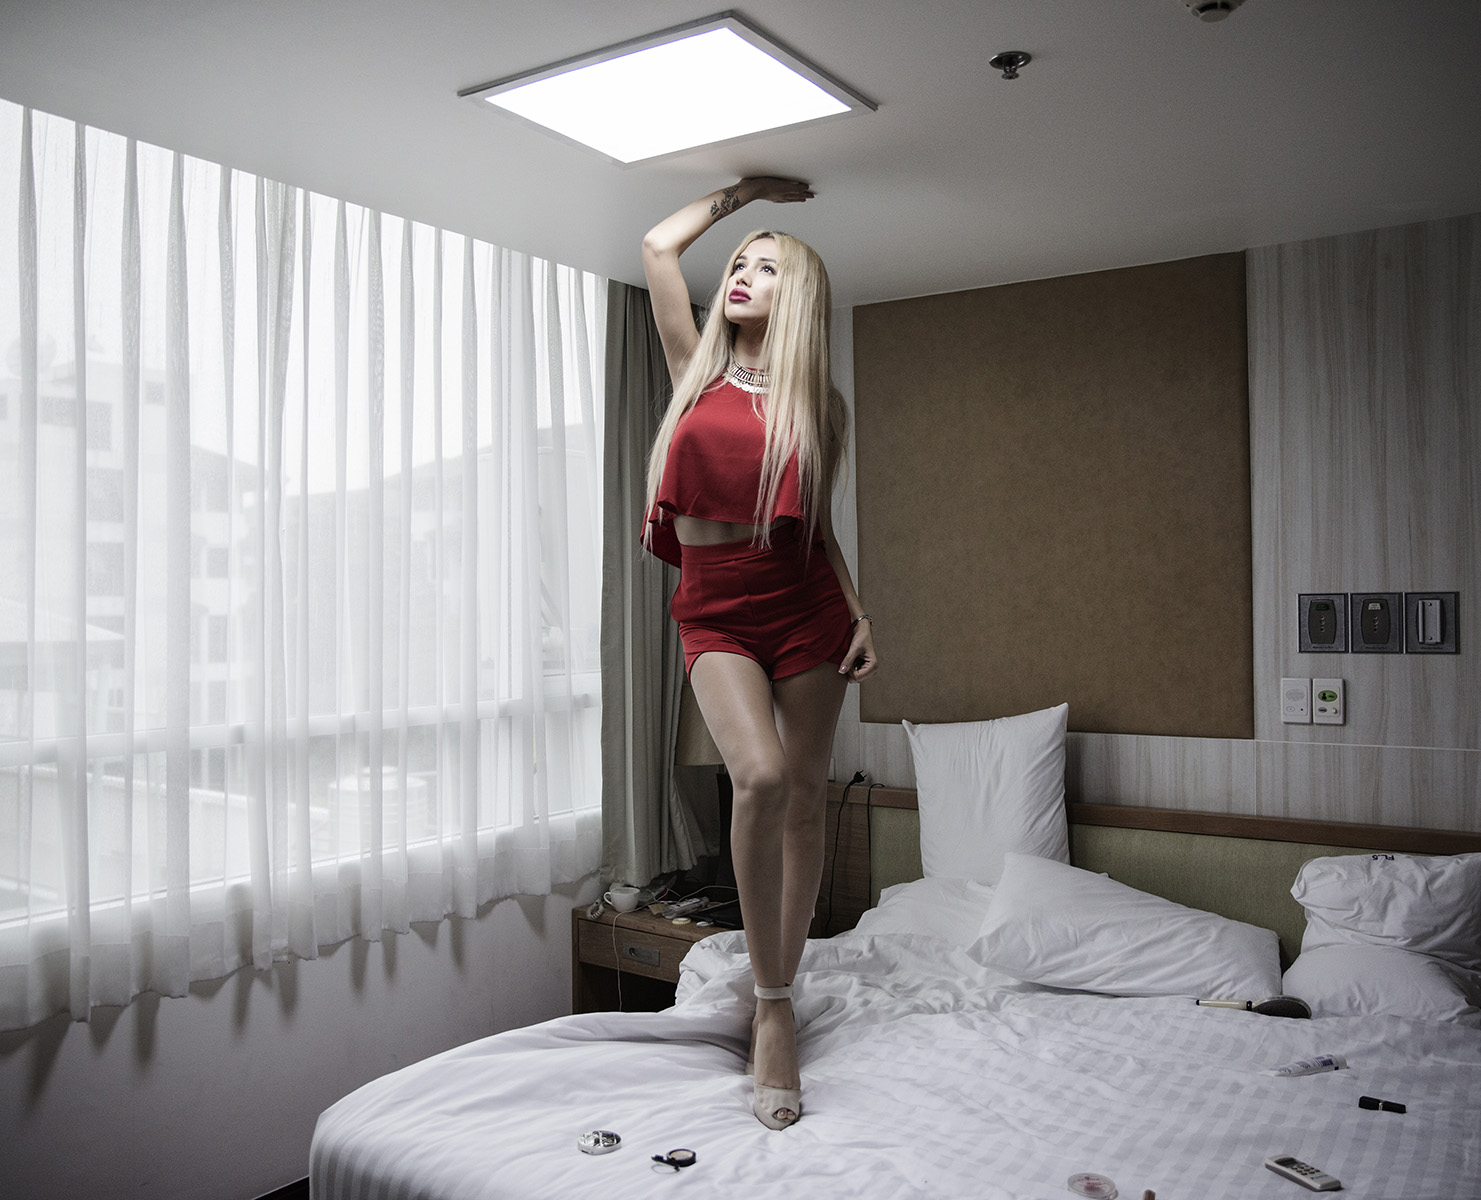 A russian patient in her room at Kamol Hospital on February 16th 2016 in Bangkok, Thailand. 22 year old Agnes Landau had her sex reassignment surgery at Kamol Hospital on January 20th. She comes from the muslim south of Moscow, Russia. Her mother is from the middle east and father from Russia. © Giulio Di Sturco